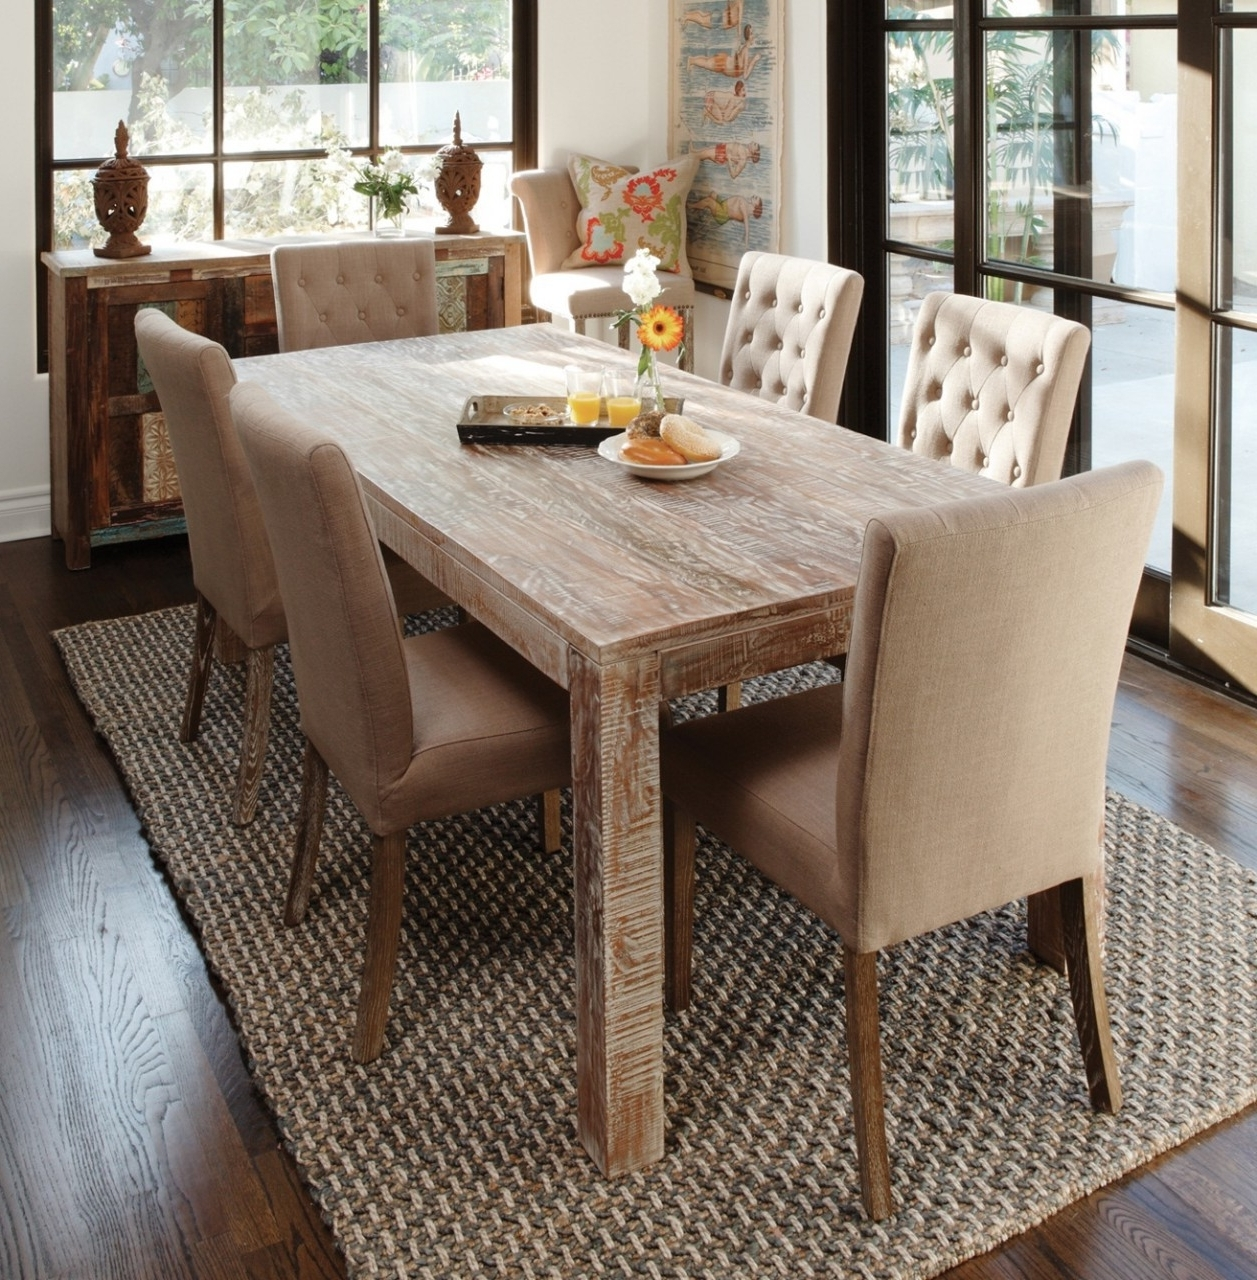 Dining Bench for Well-known Bali Dining Tables